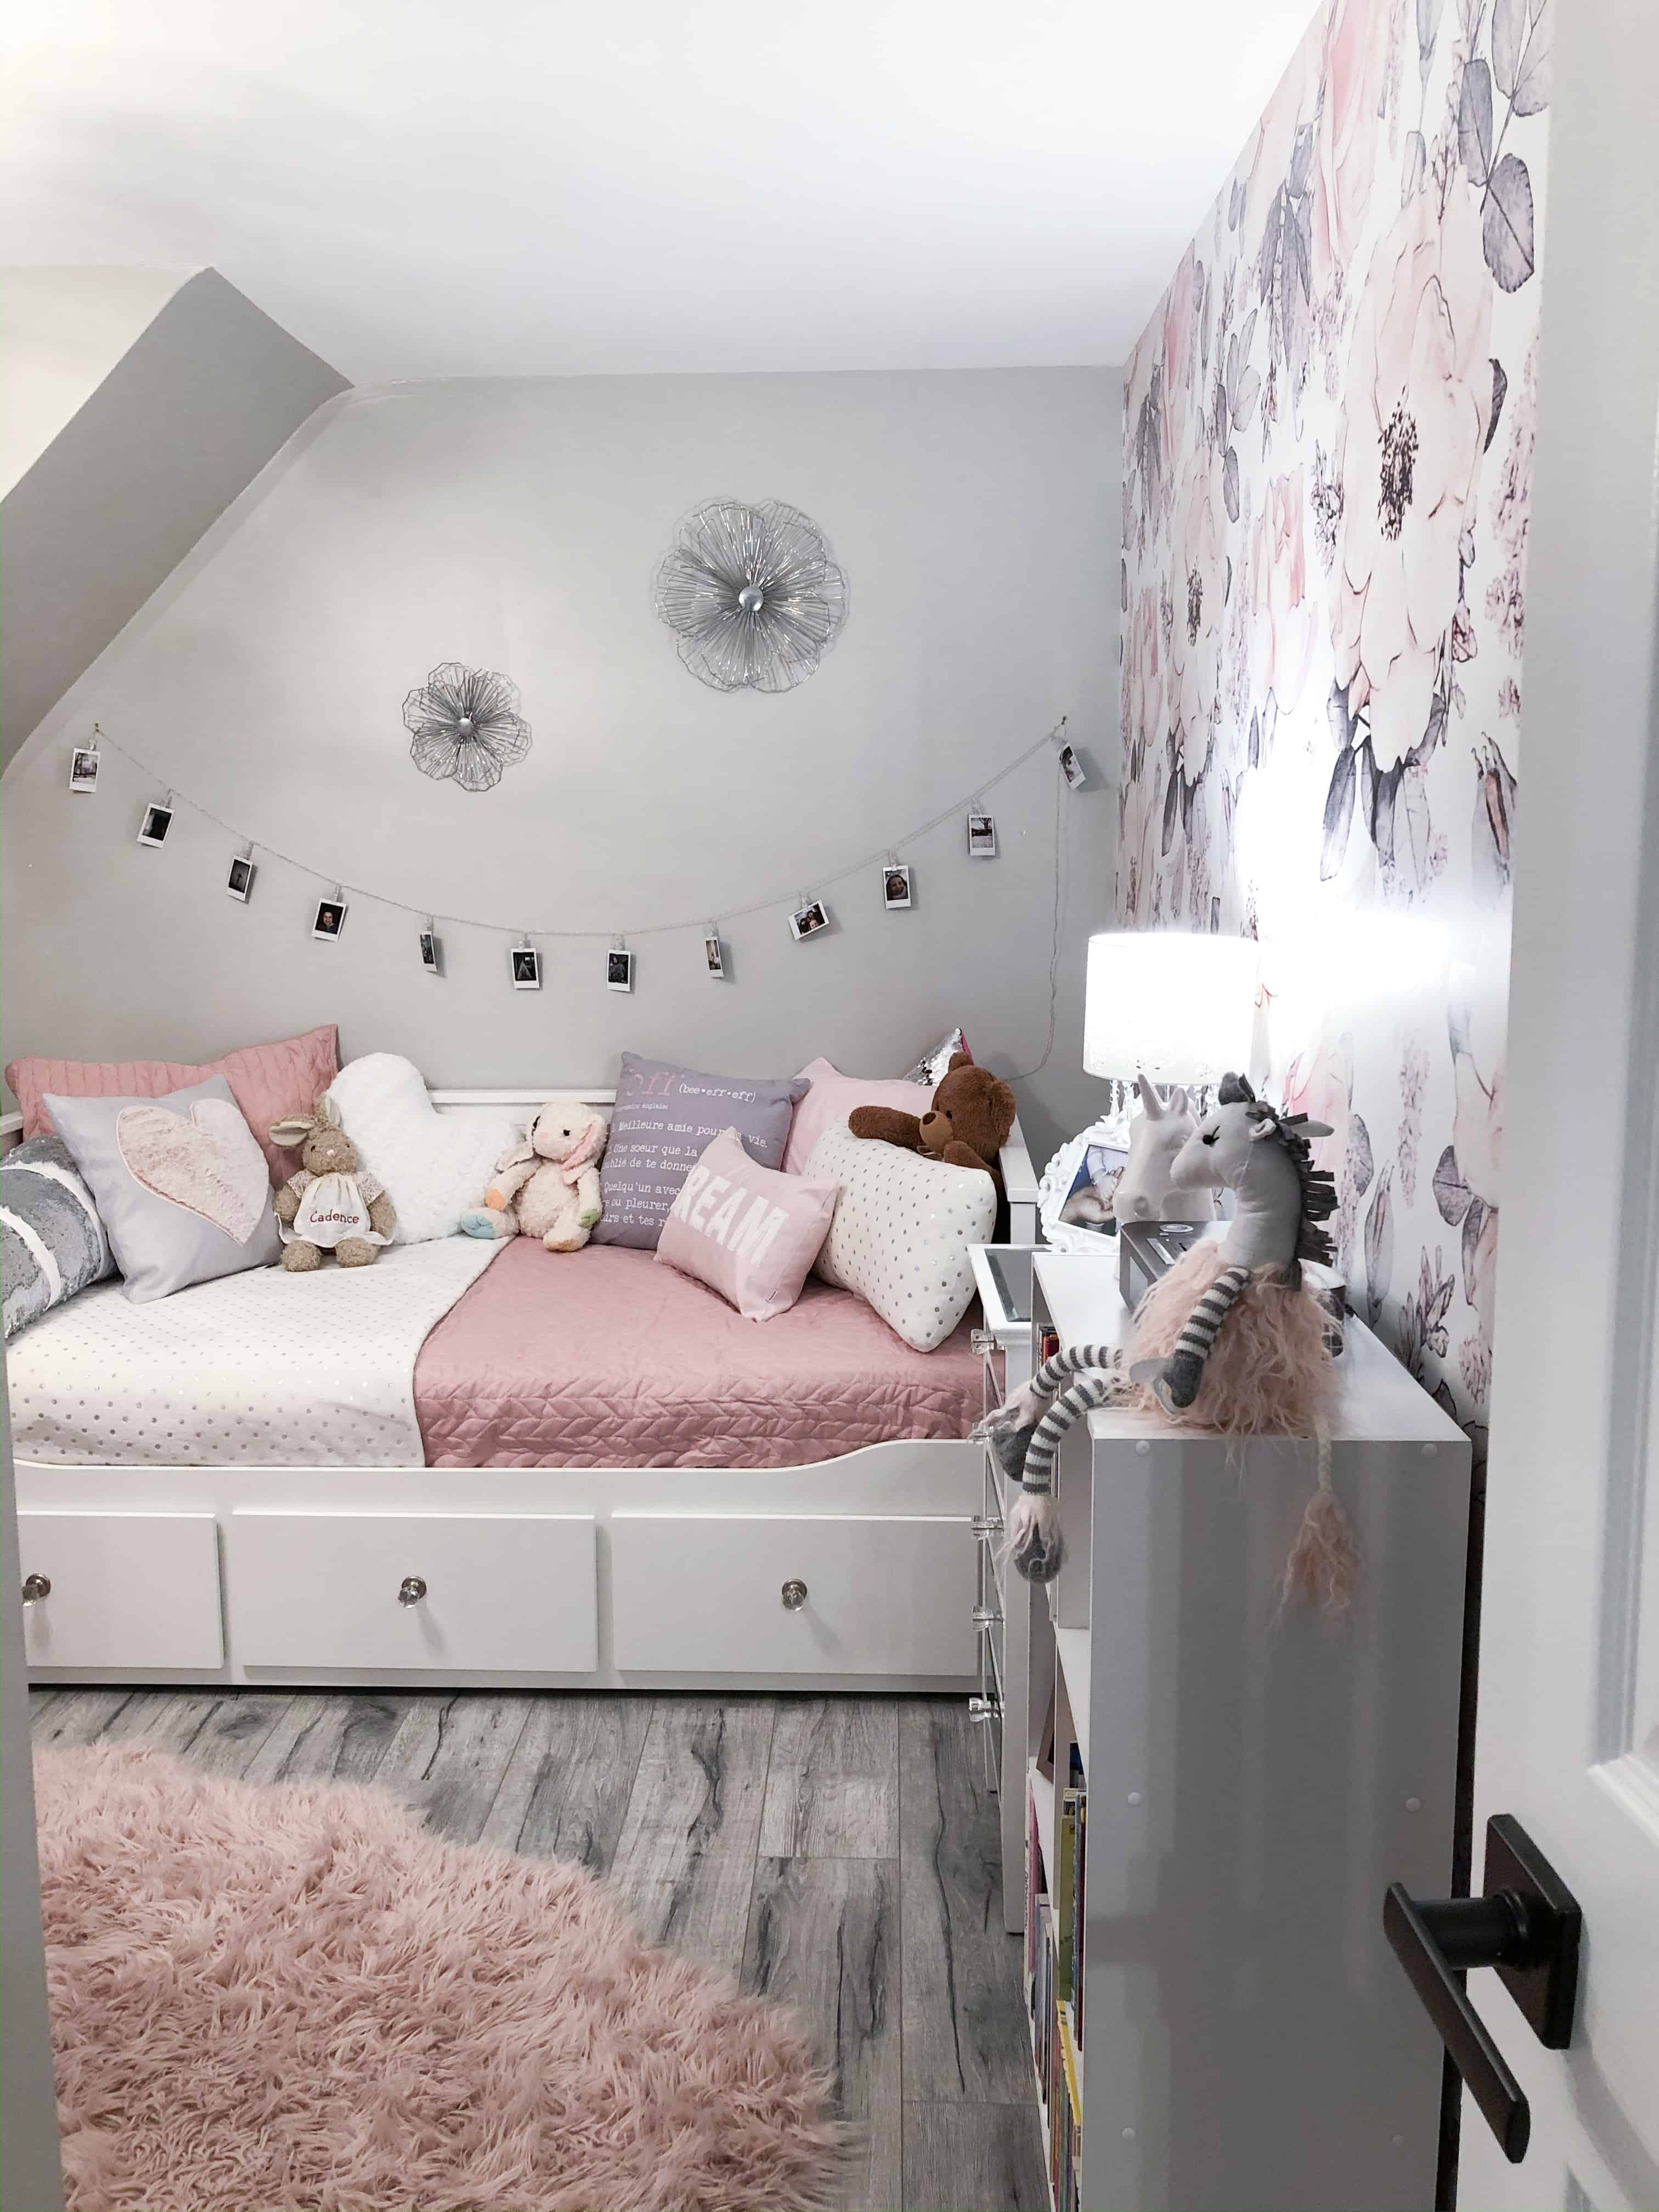 Two Girls Transformed Their College Dorm Into A Palace